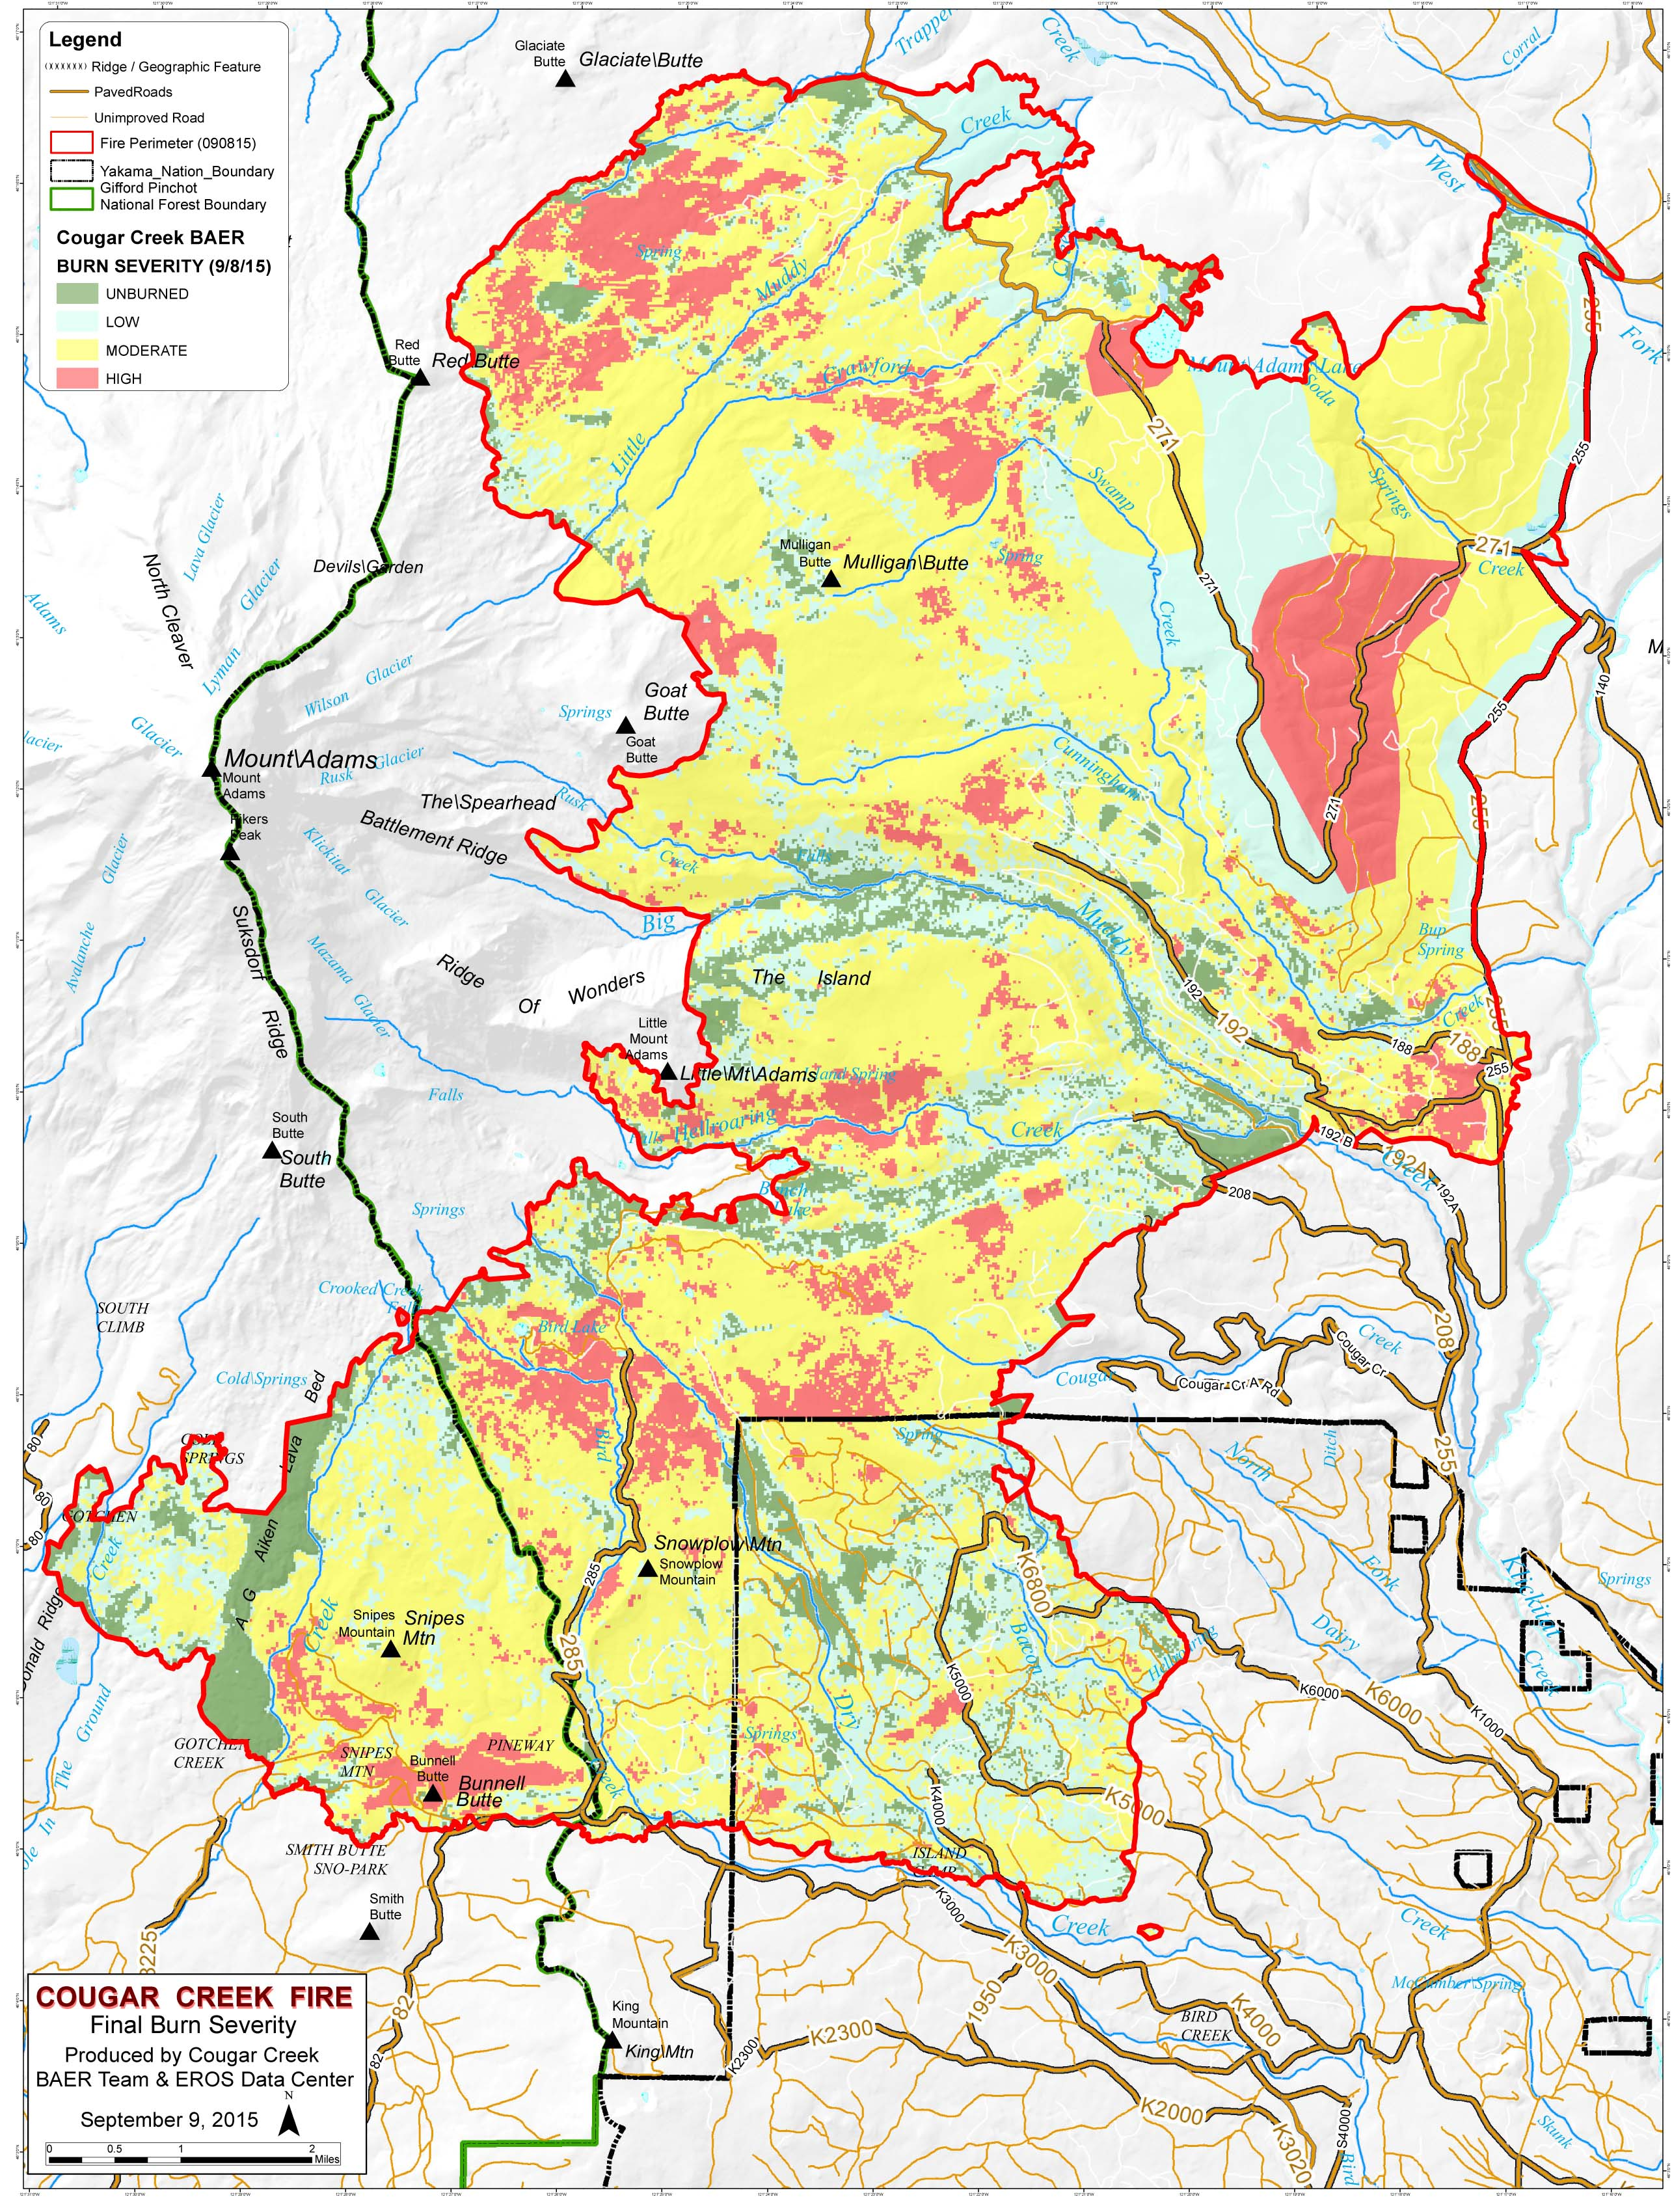 Cougar Creek Fire Burn Severity Maps | Friends of Mount Adams